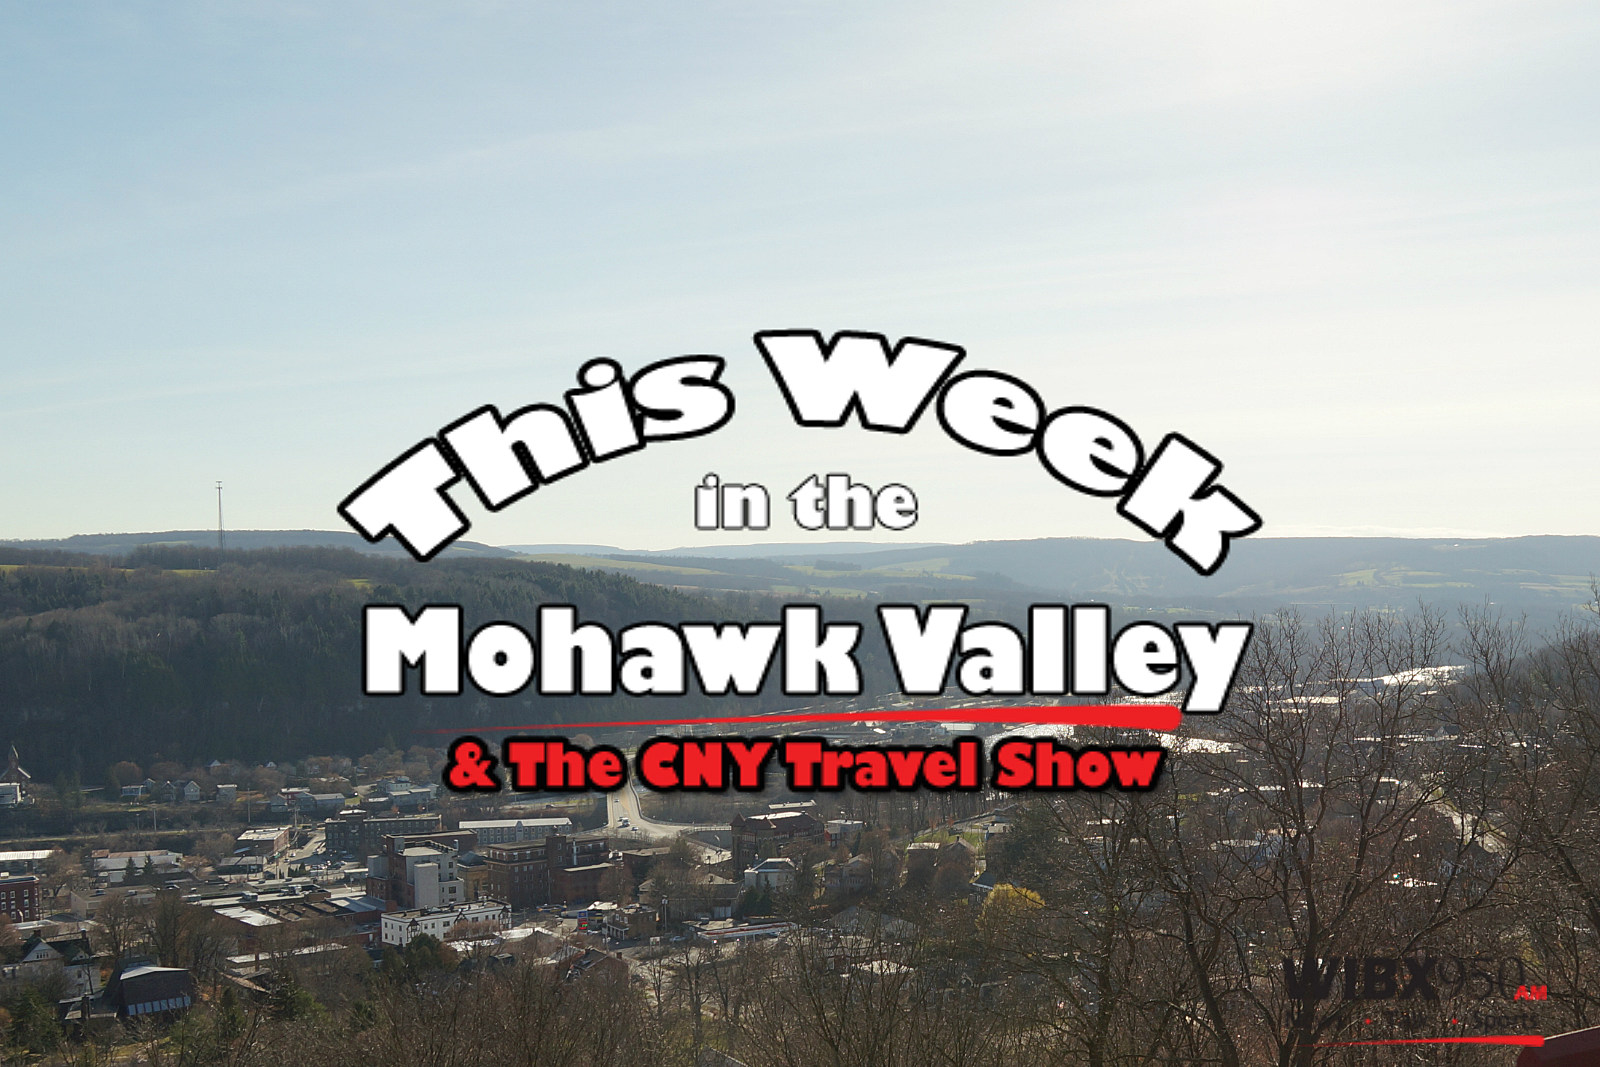 A Taste Of Rome Comes To The Rome Art & Community Center  – This Week In The Mohawk Valley